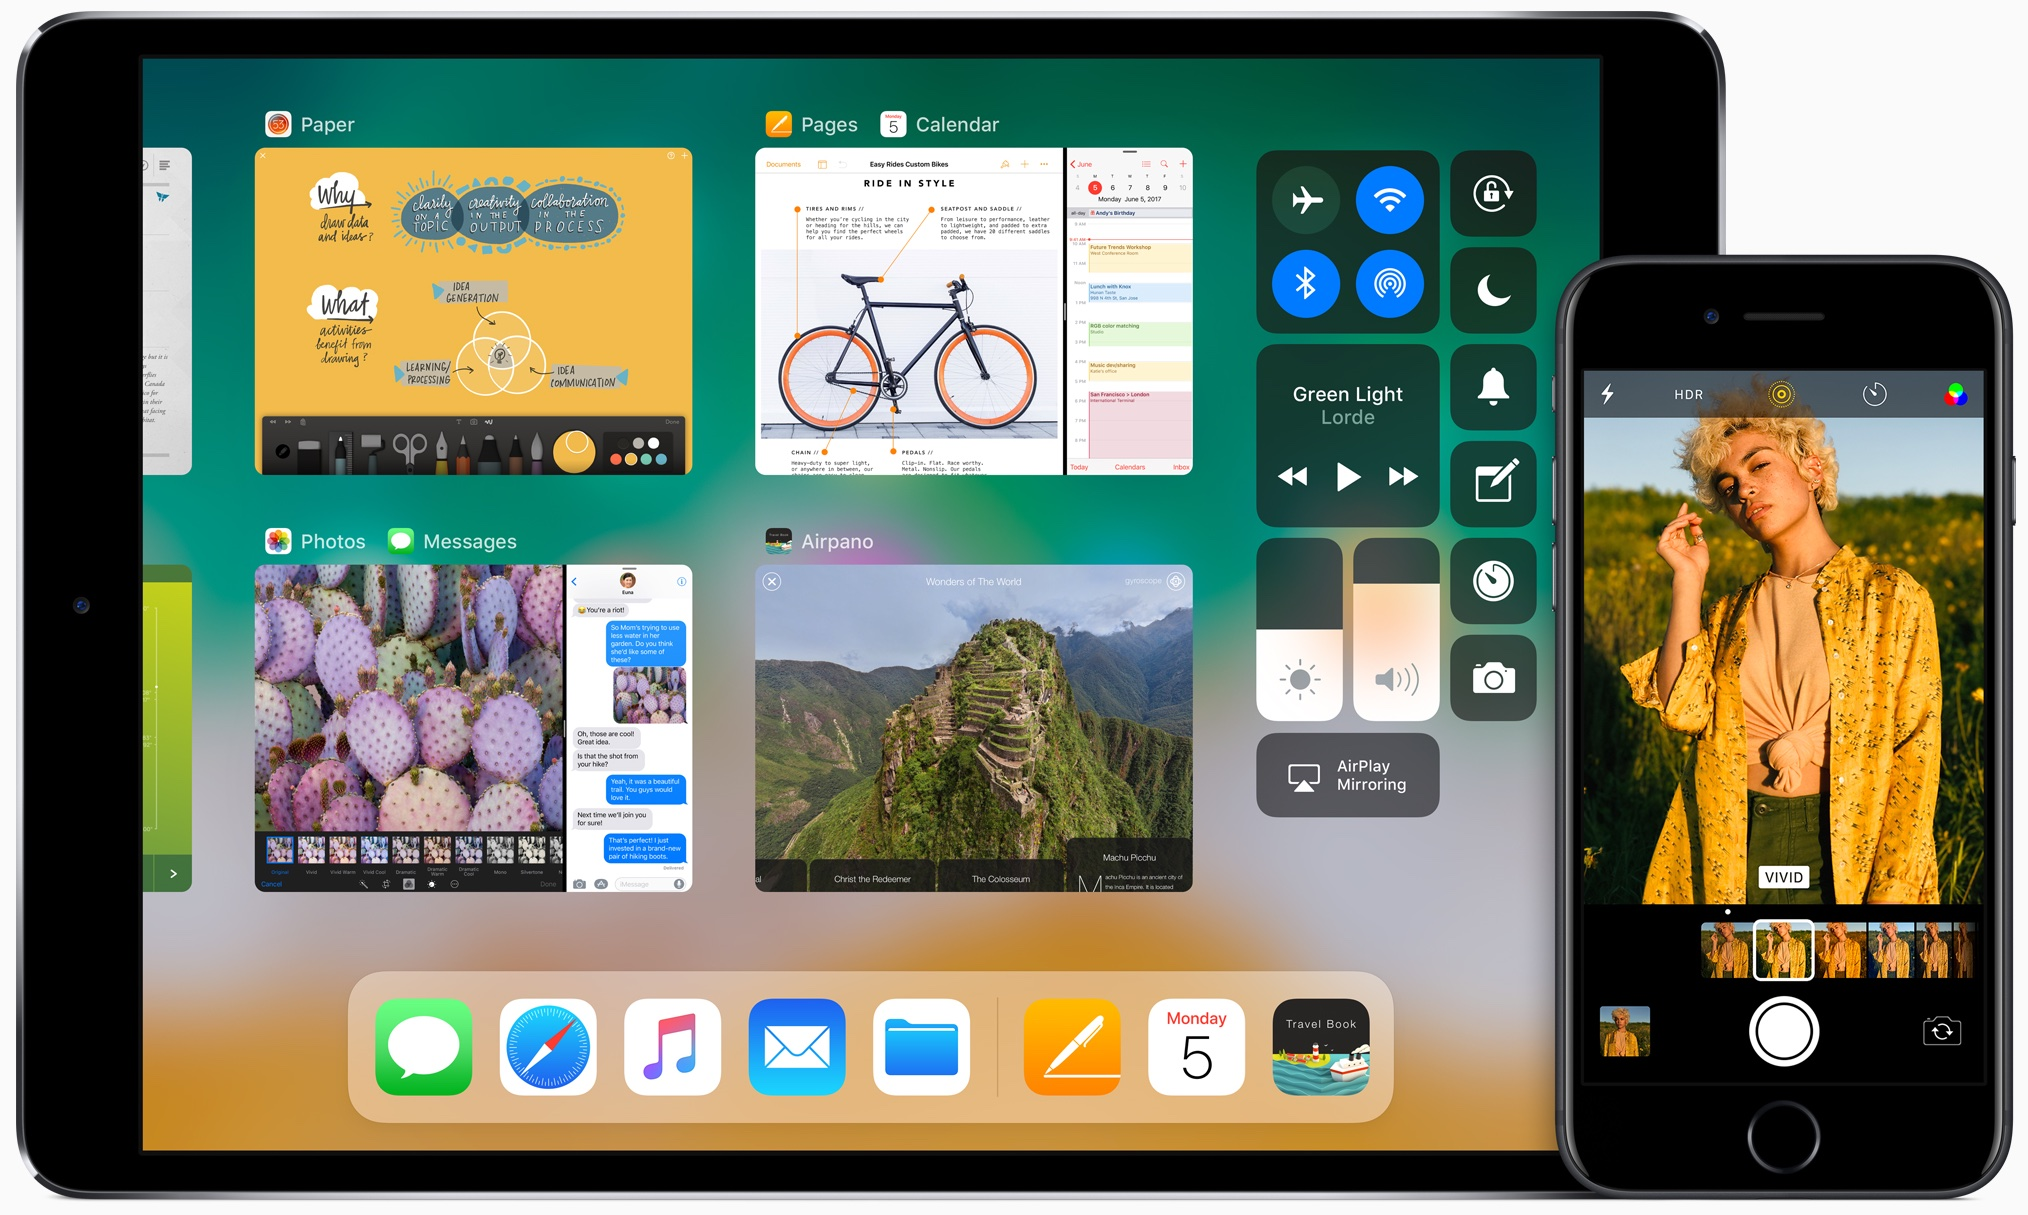 How to prepare your iPhone or iPad for iOS 11